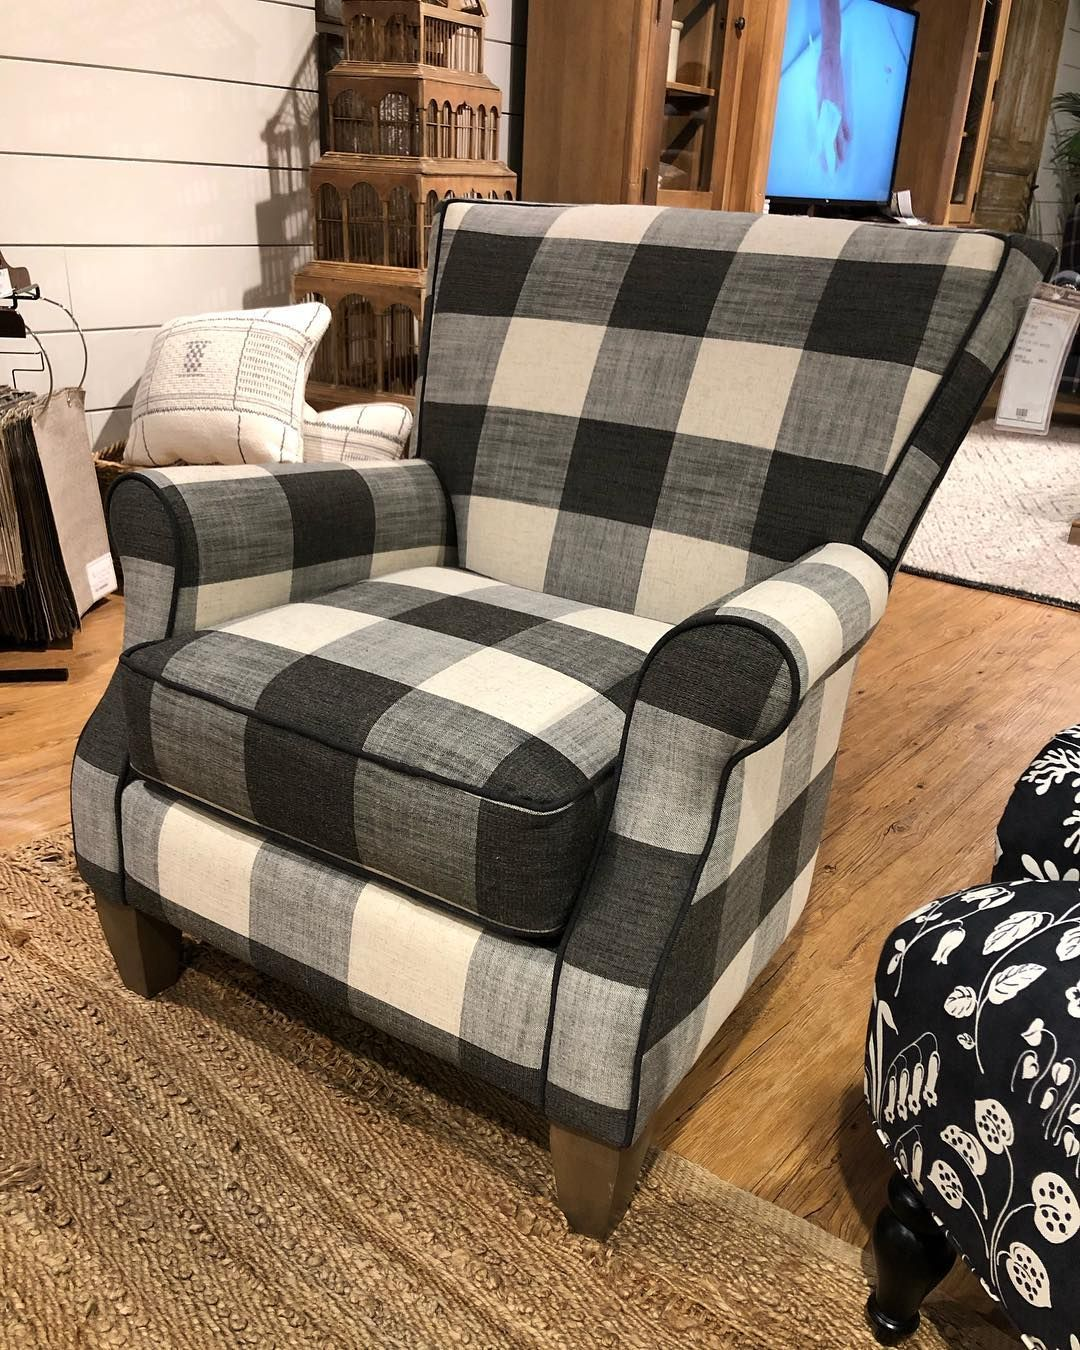 10 Most Popular Plaid Chairs For Living Room